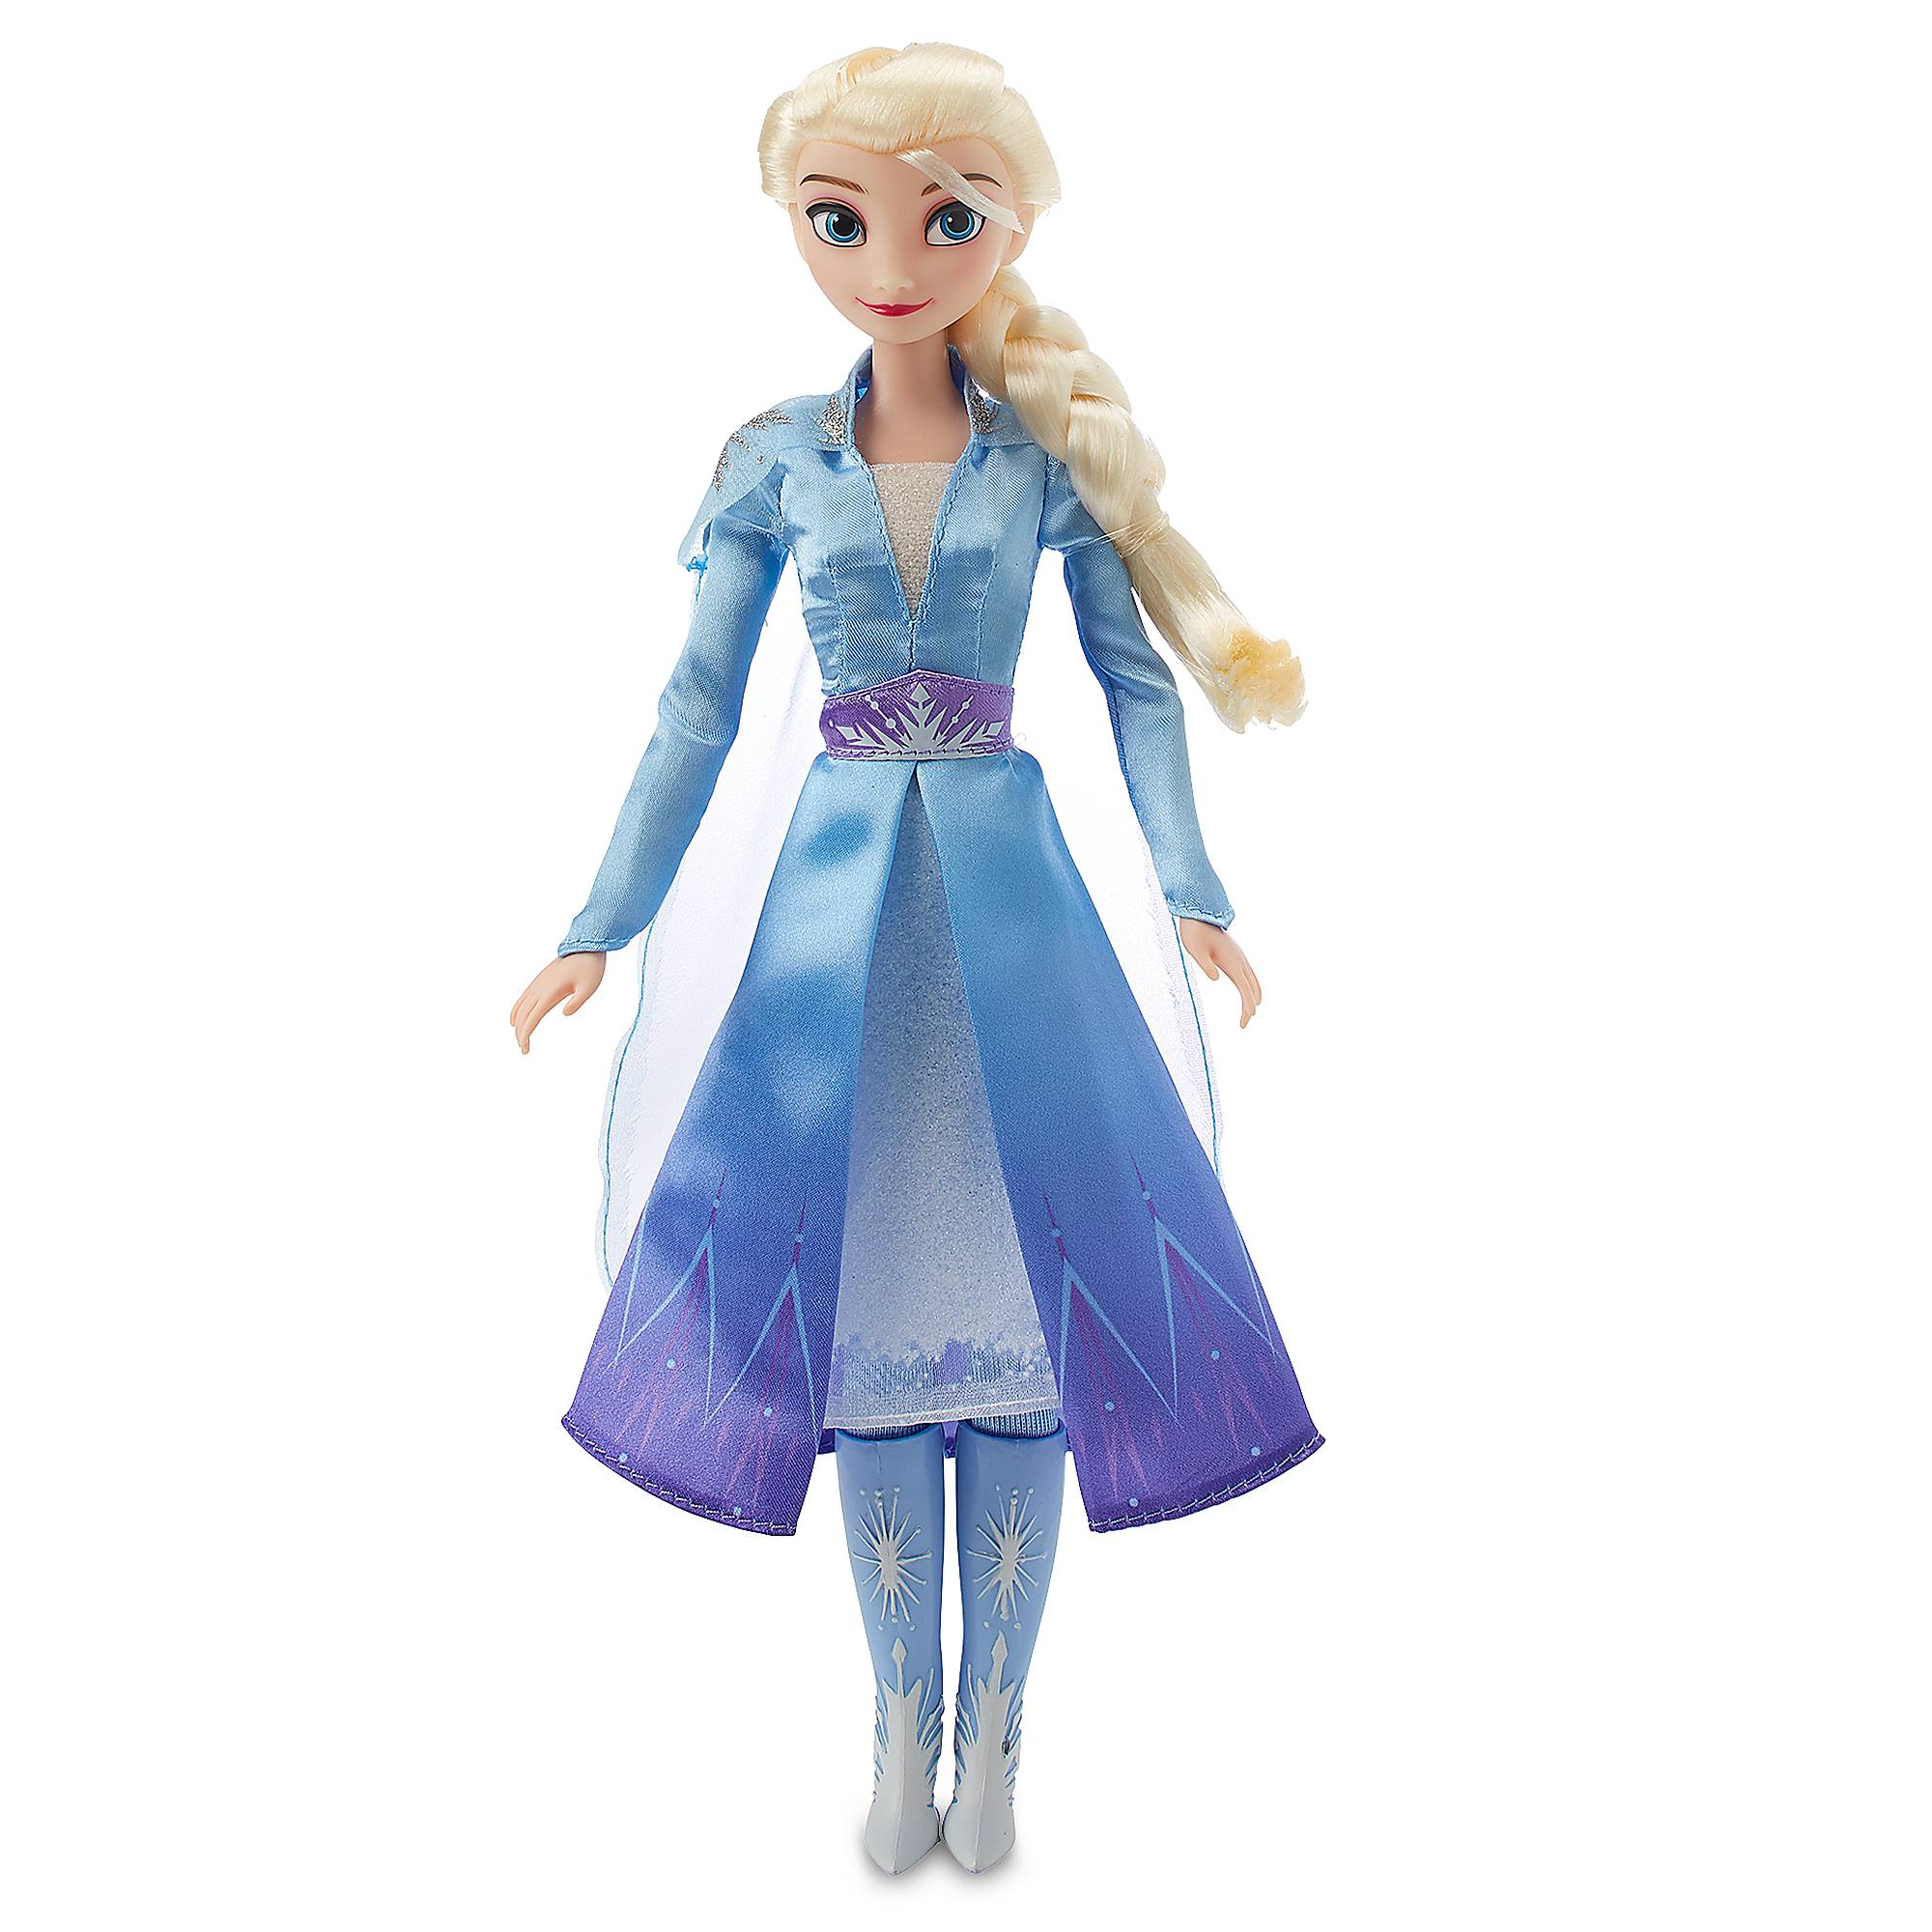 Disney Store: Up to 70% off sale items + Free shipping!